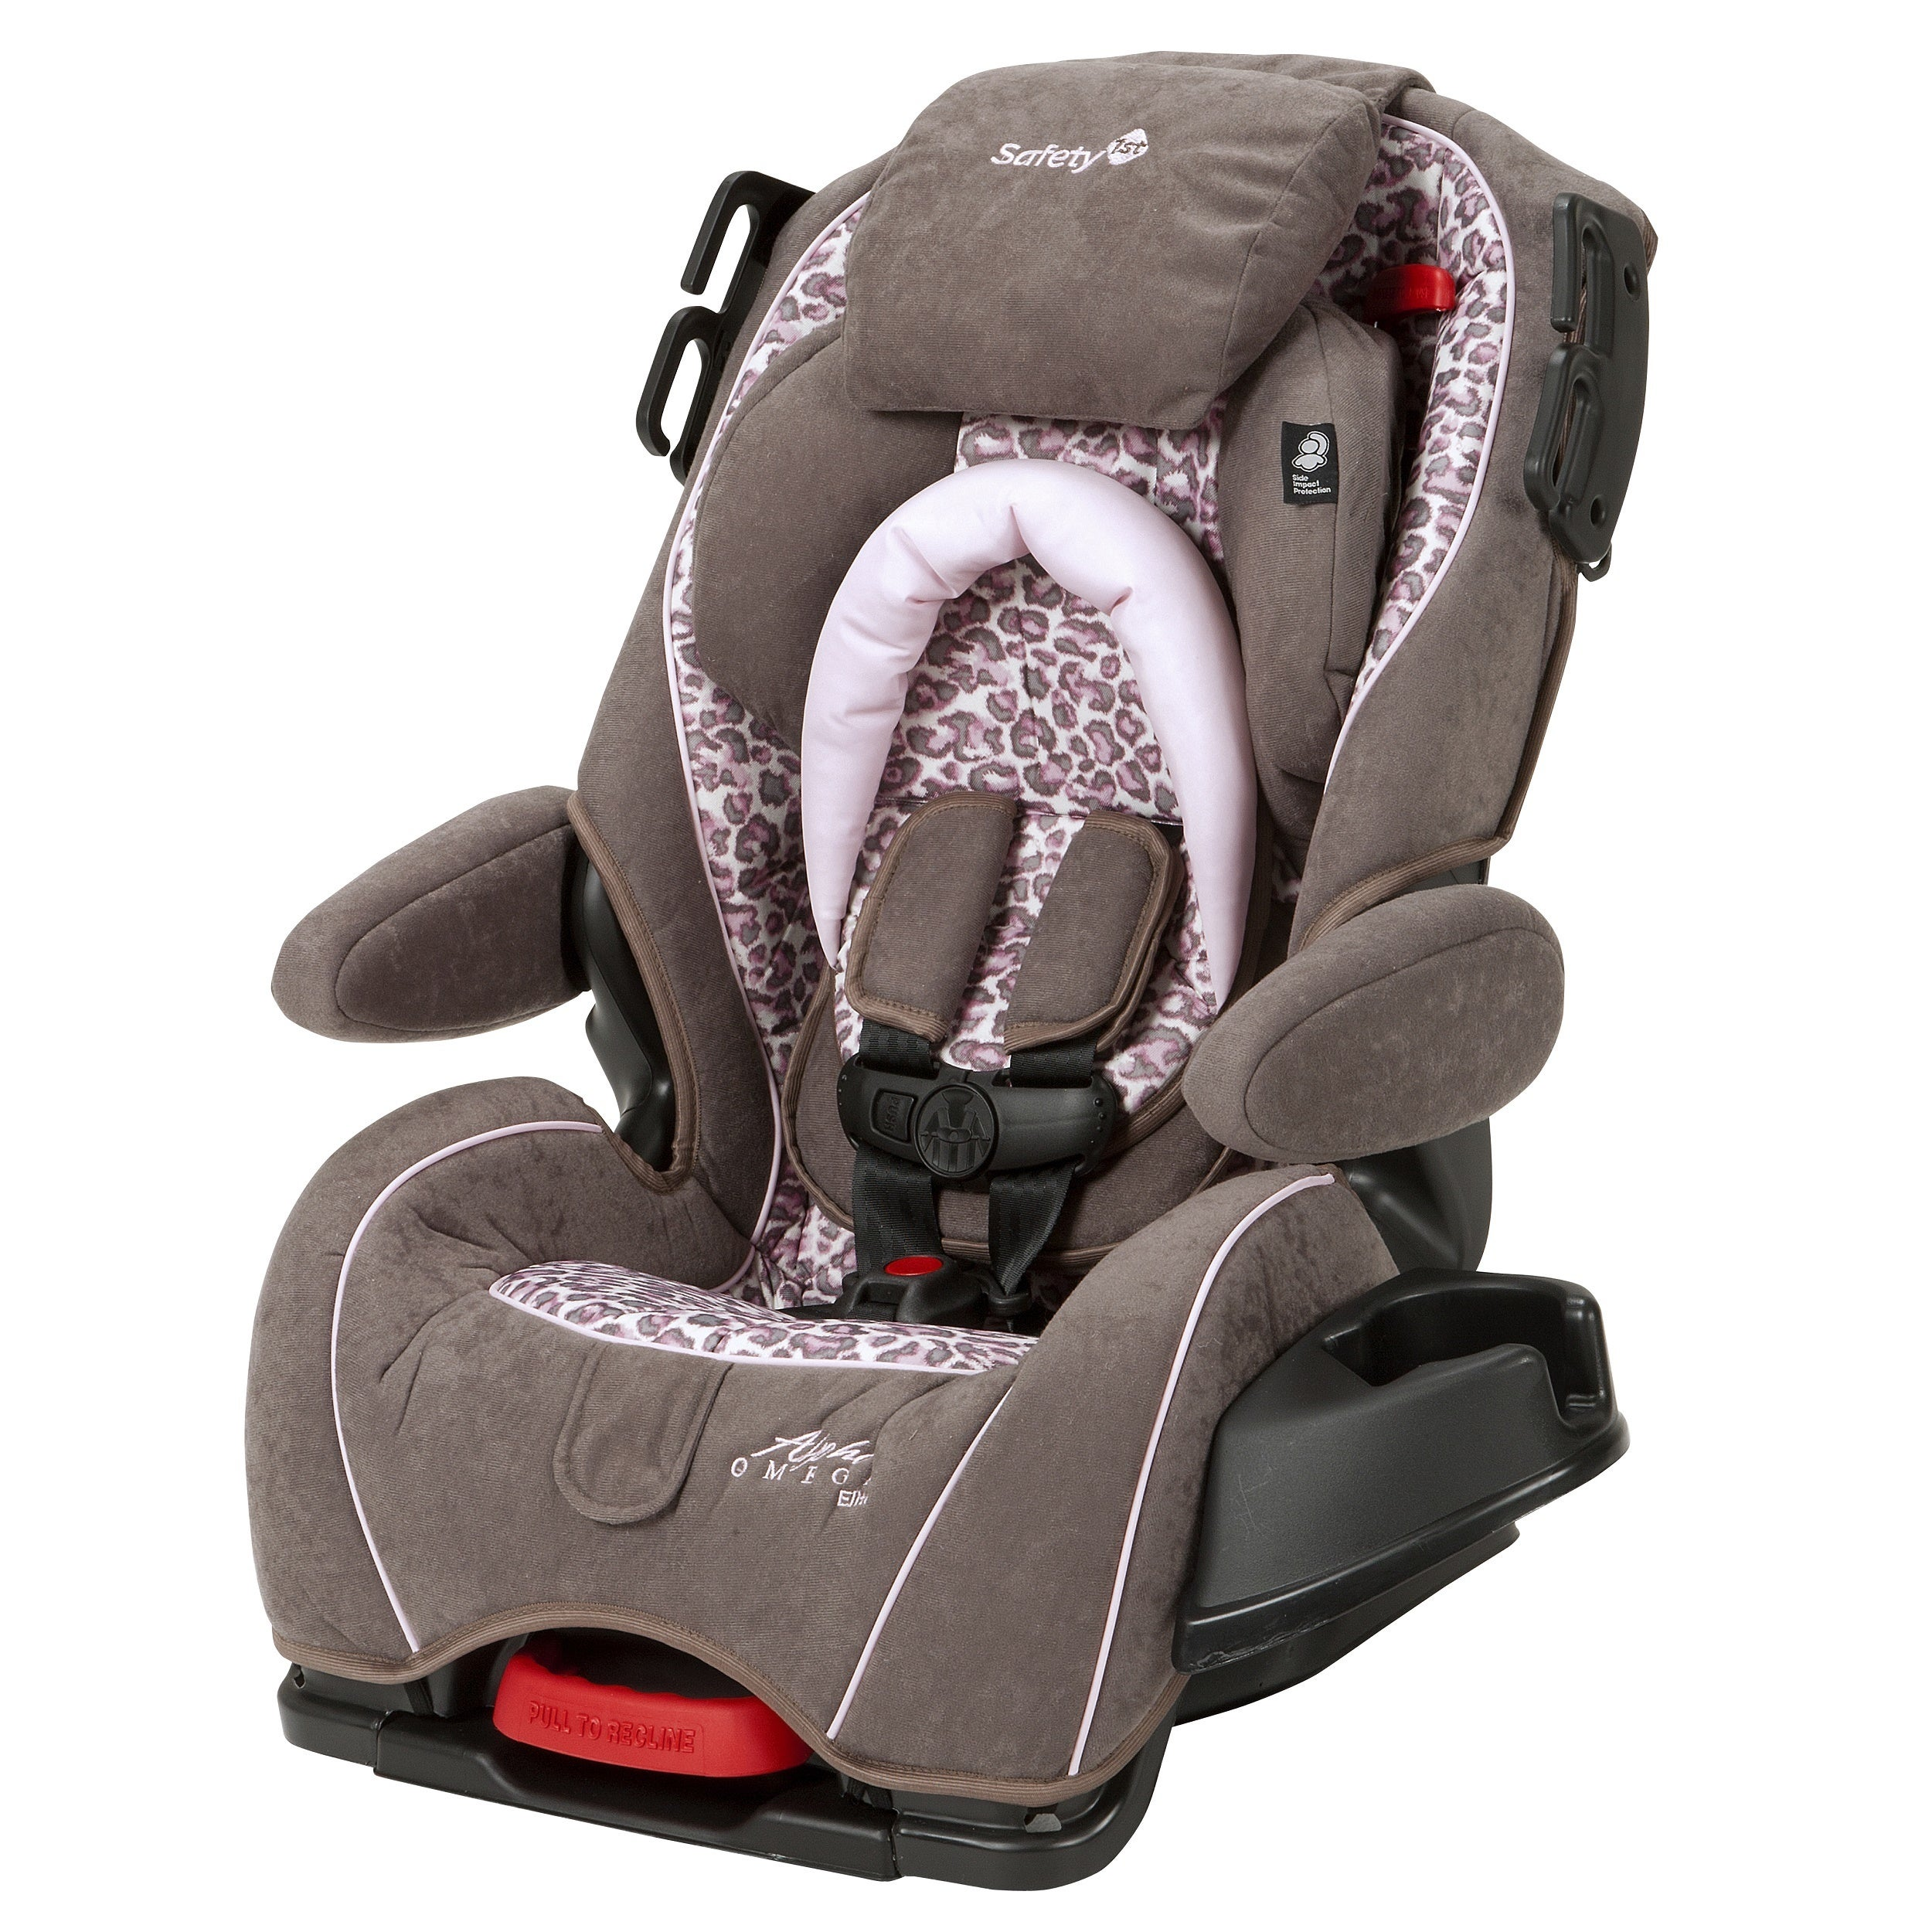 Safety 1st Alpha Omega Elite Convertible Car Seat in Pret...